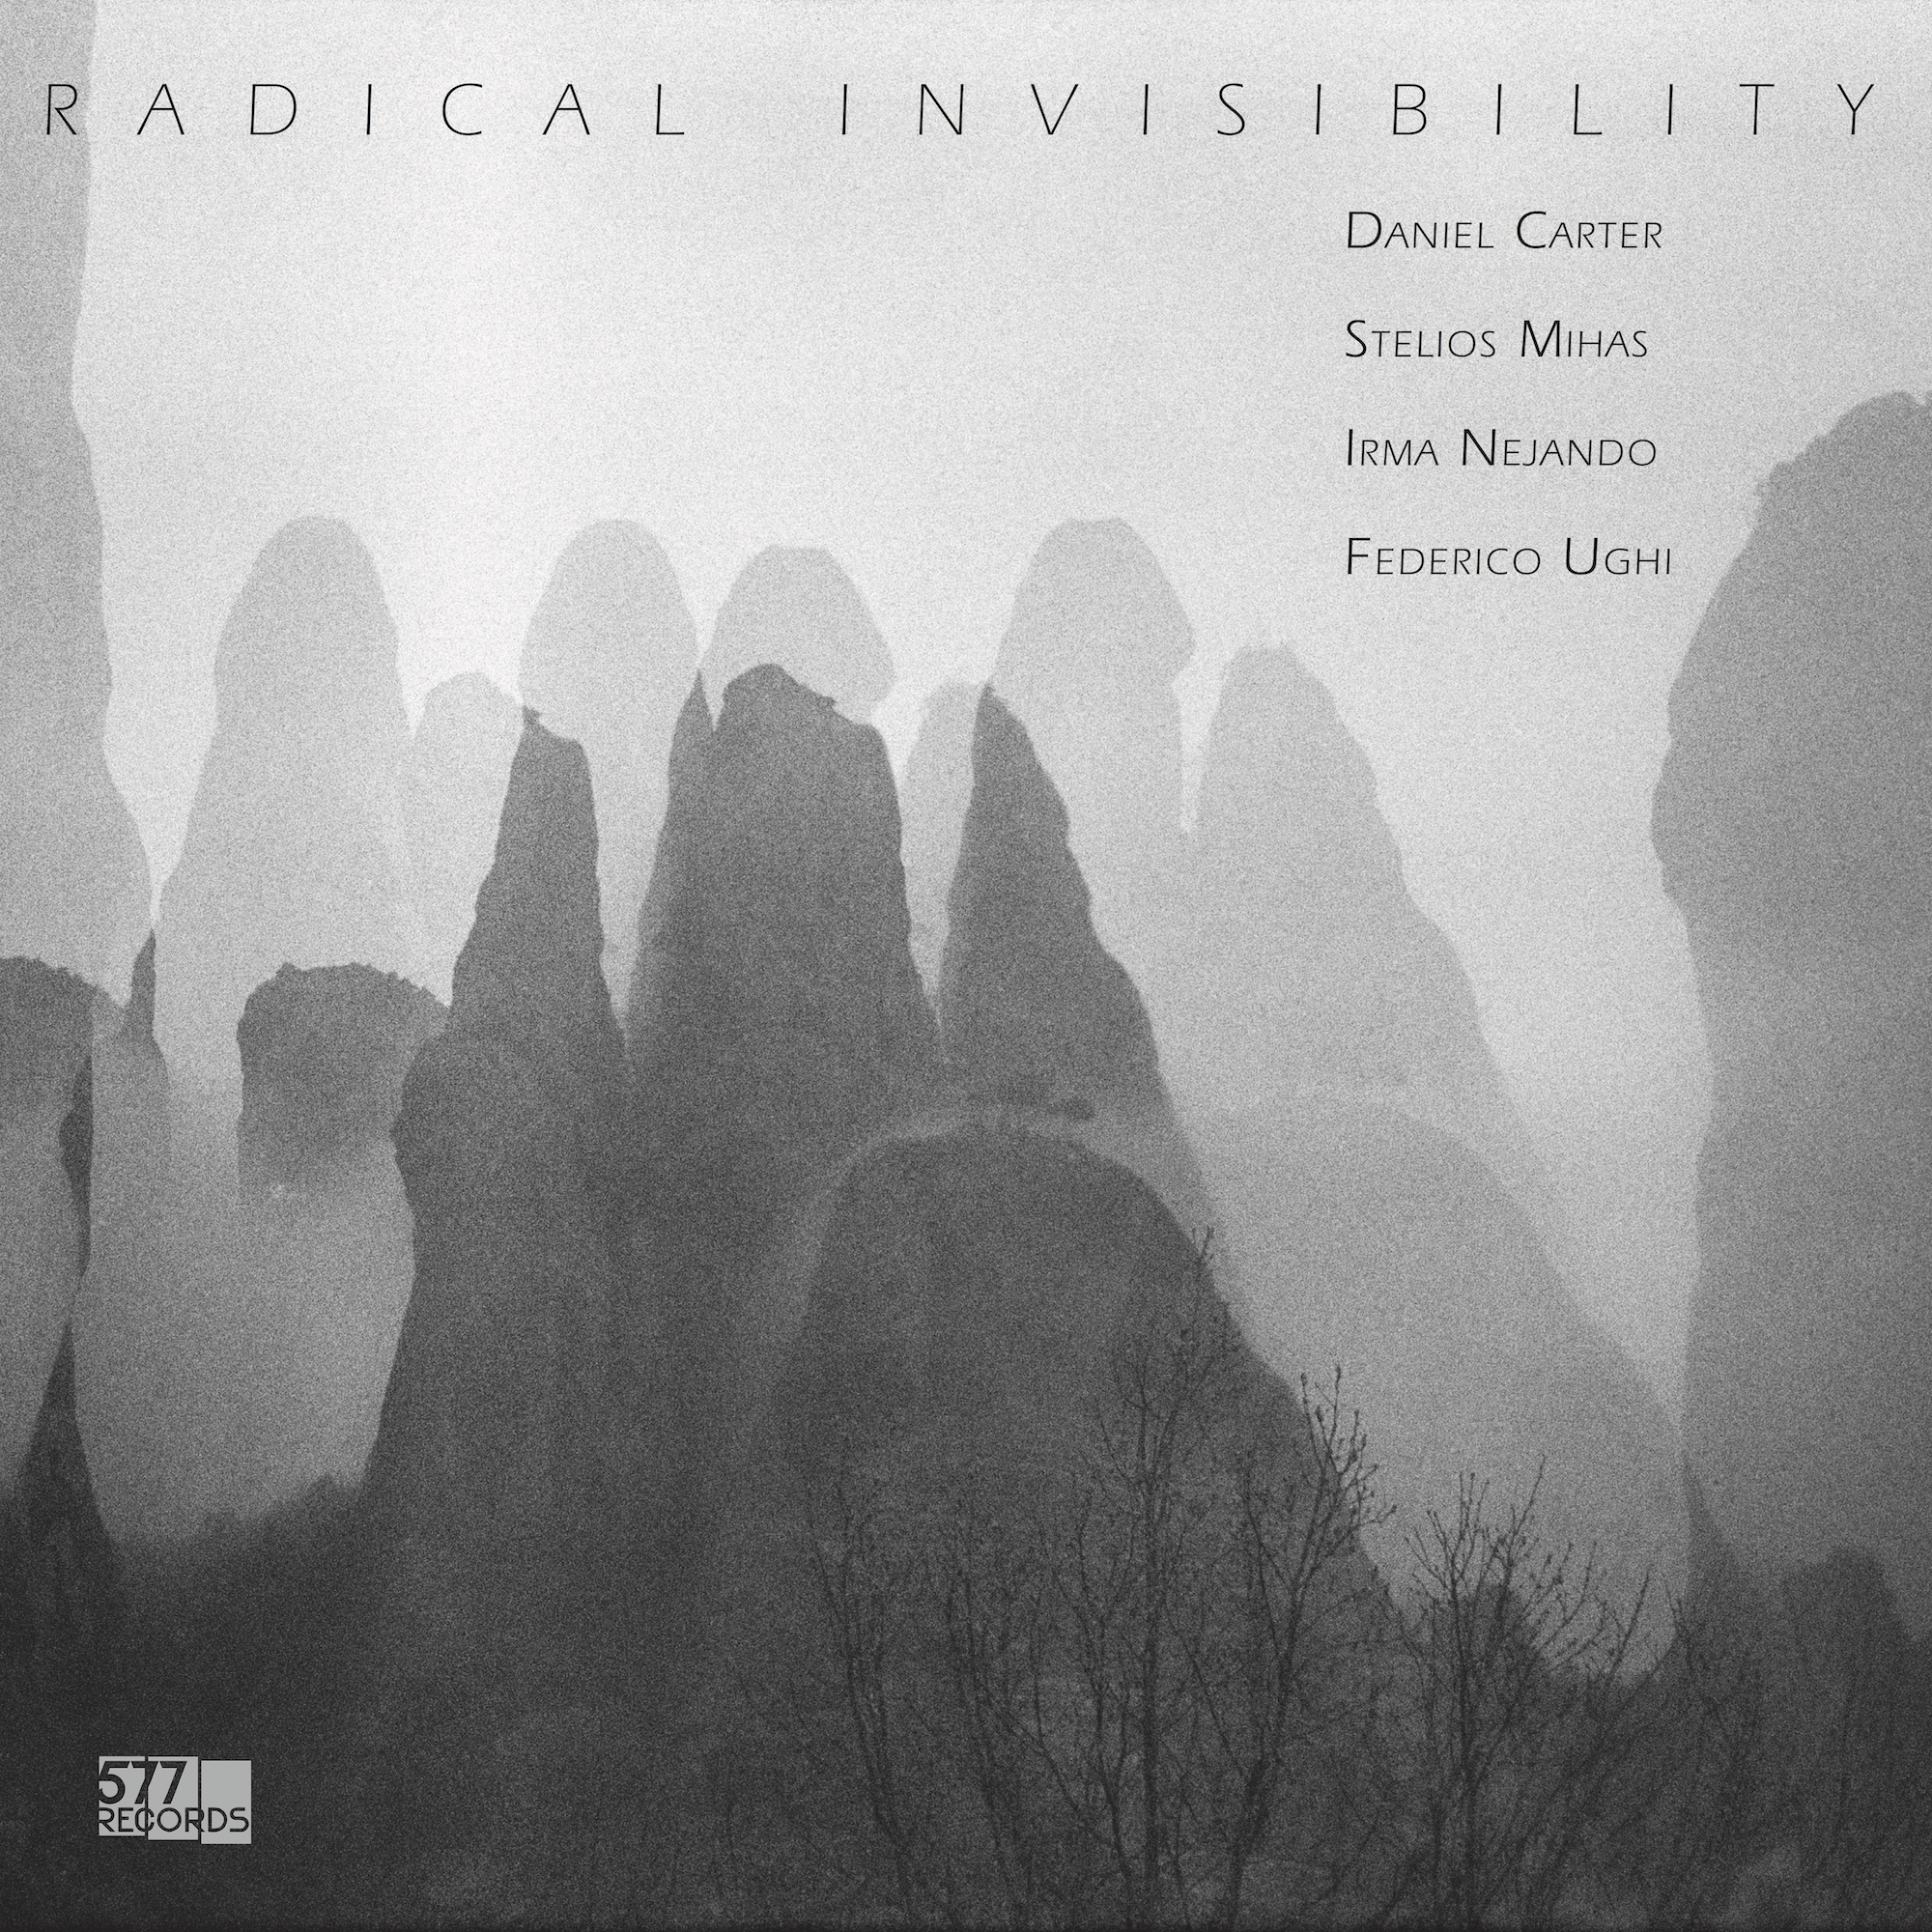 5806 RADICAL INVISIBILITY cover.jpg